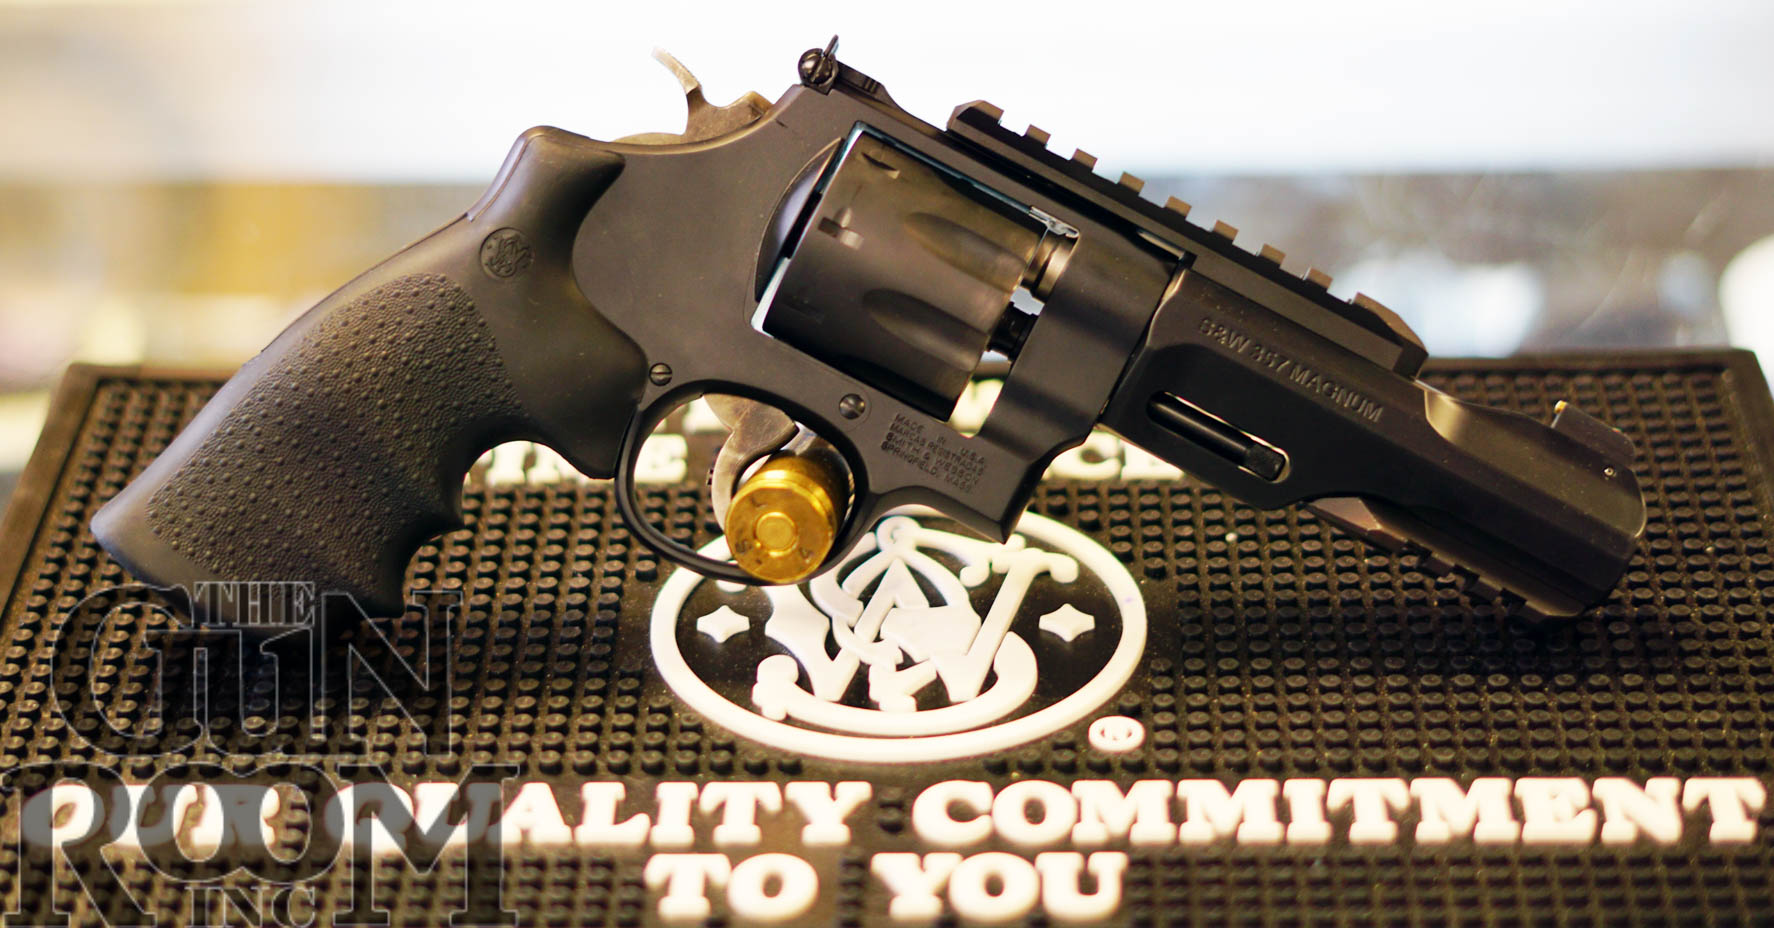 Smith & Wesson Performance Center TRR8 VS Smith & Wesson R8 – The